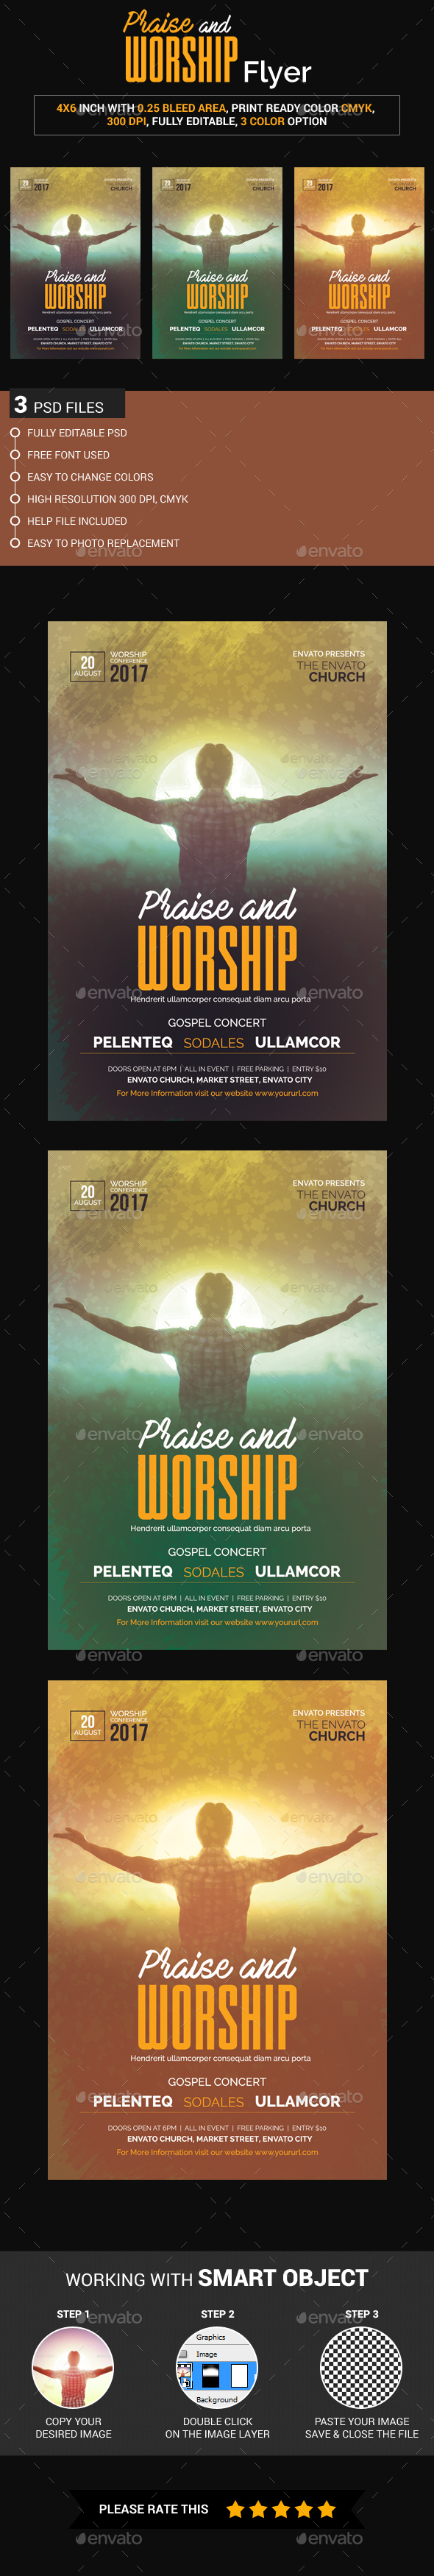 Praise and Worship Flyer - Church Flyers